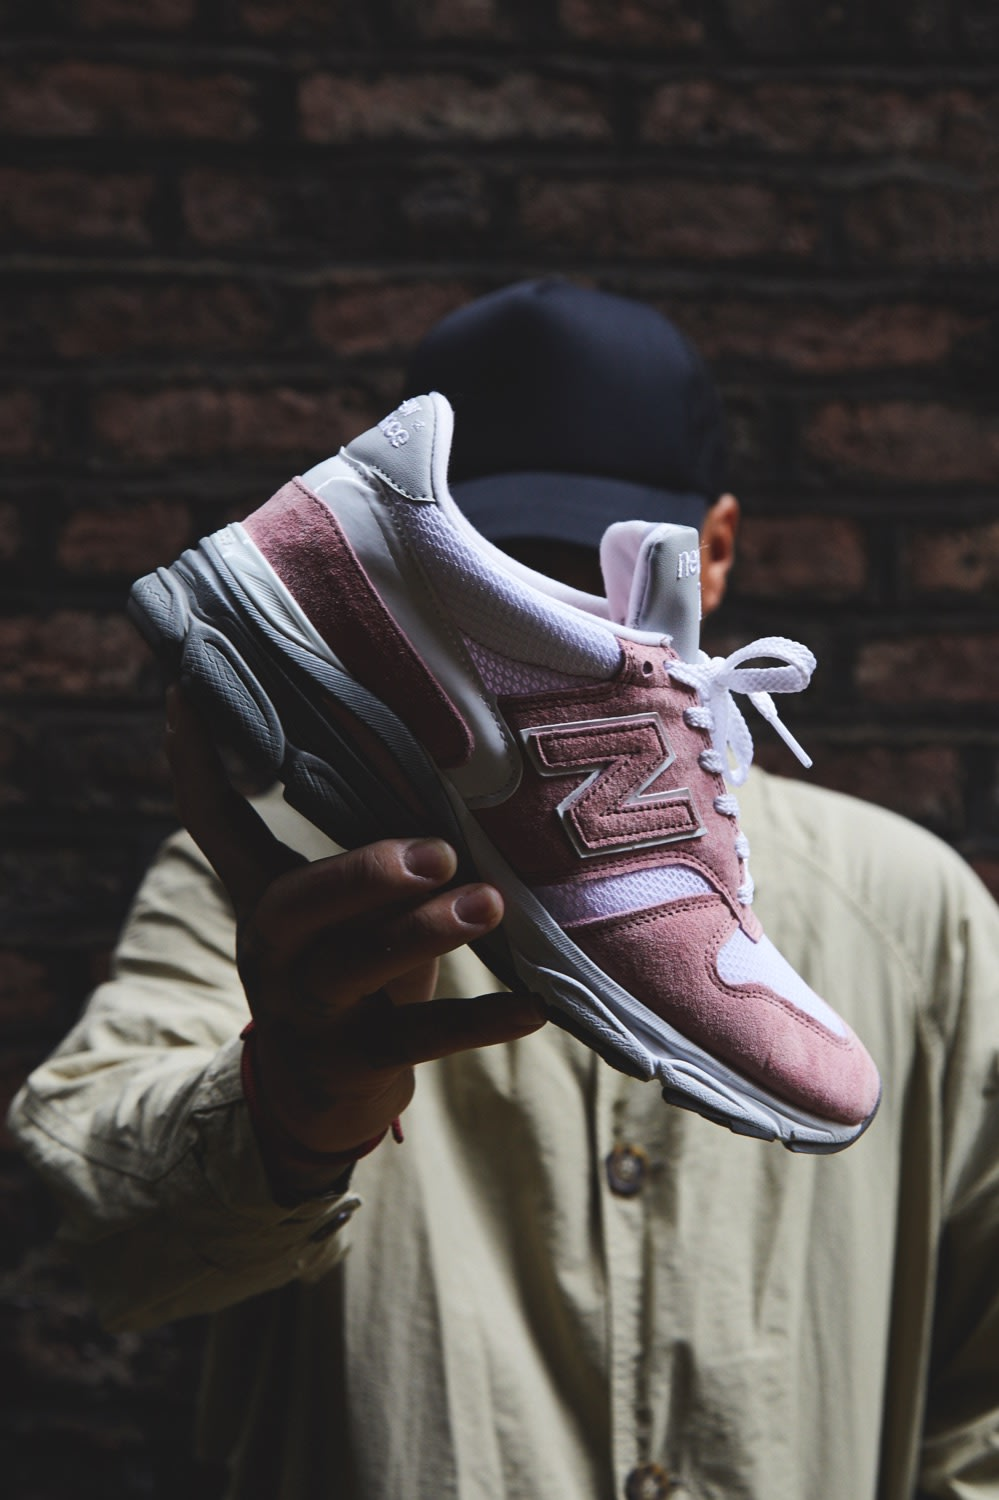 Ste Wing of Visionarism holding pastel pink New Balance 770.9 for END.